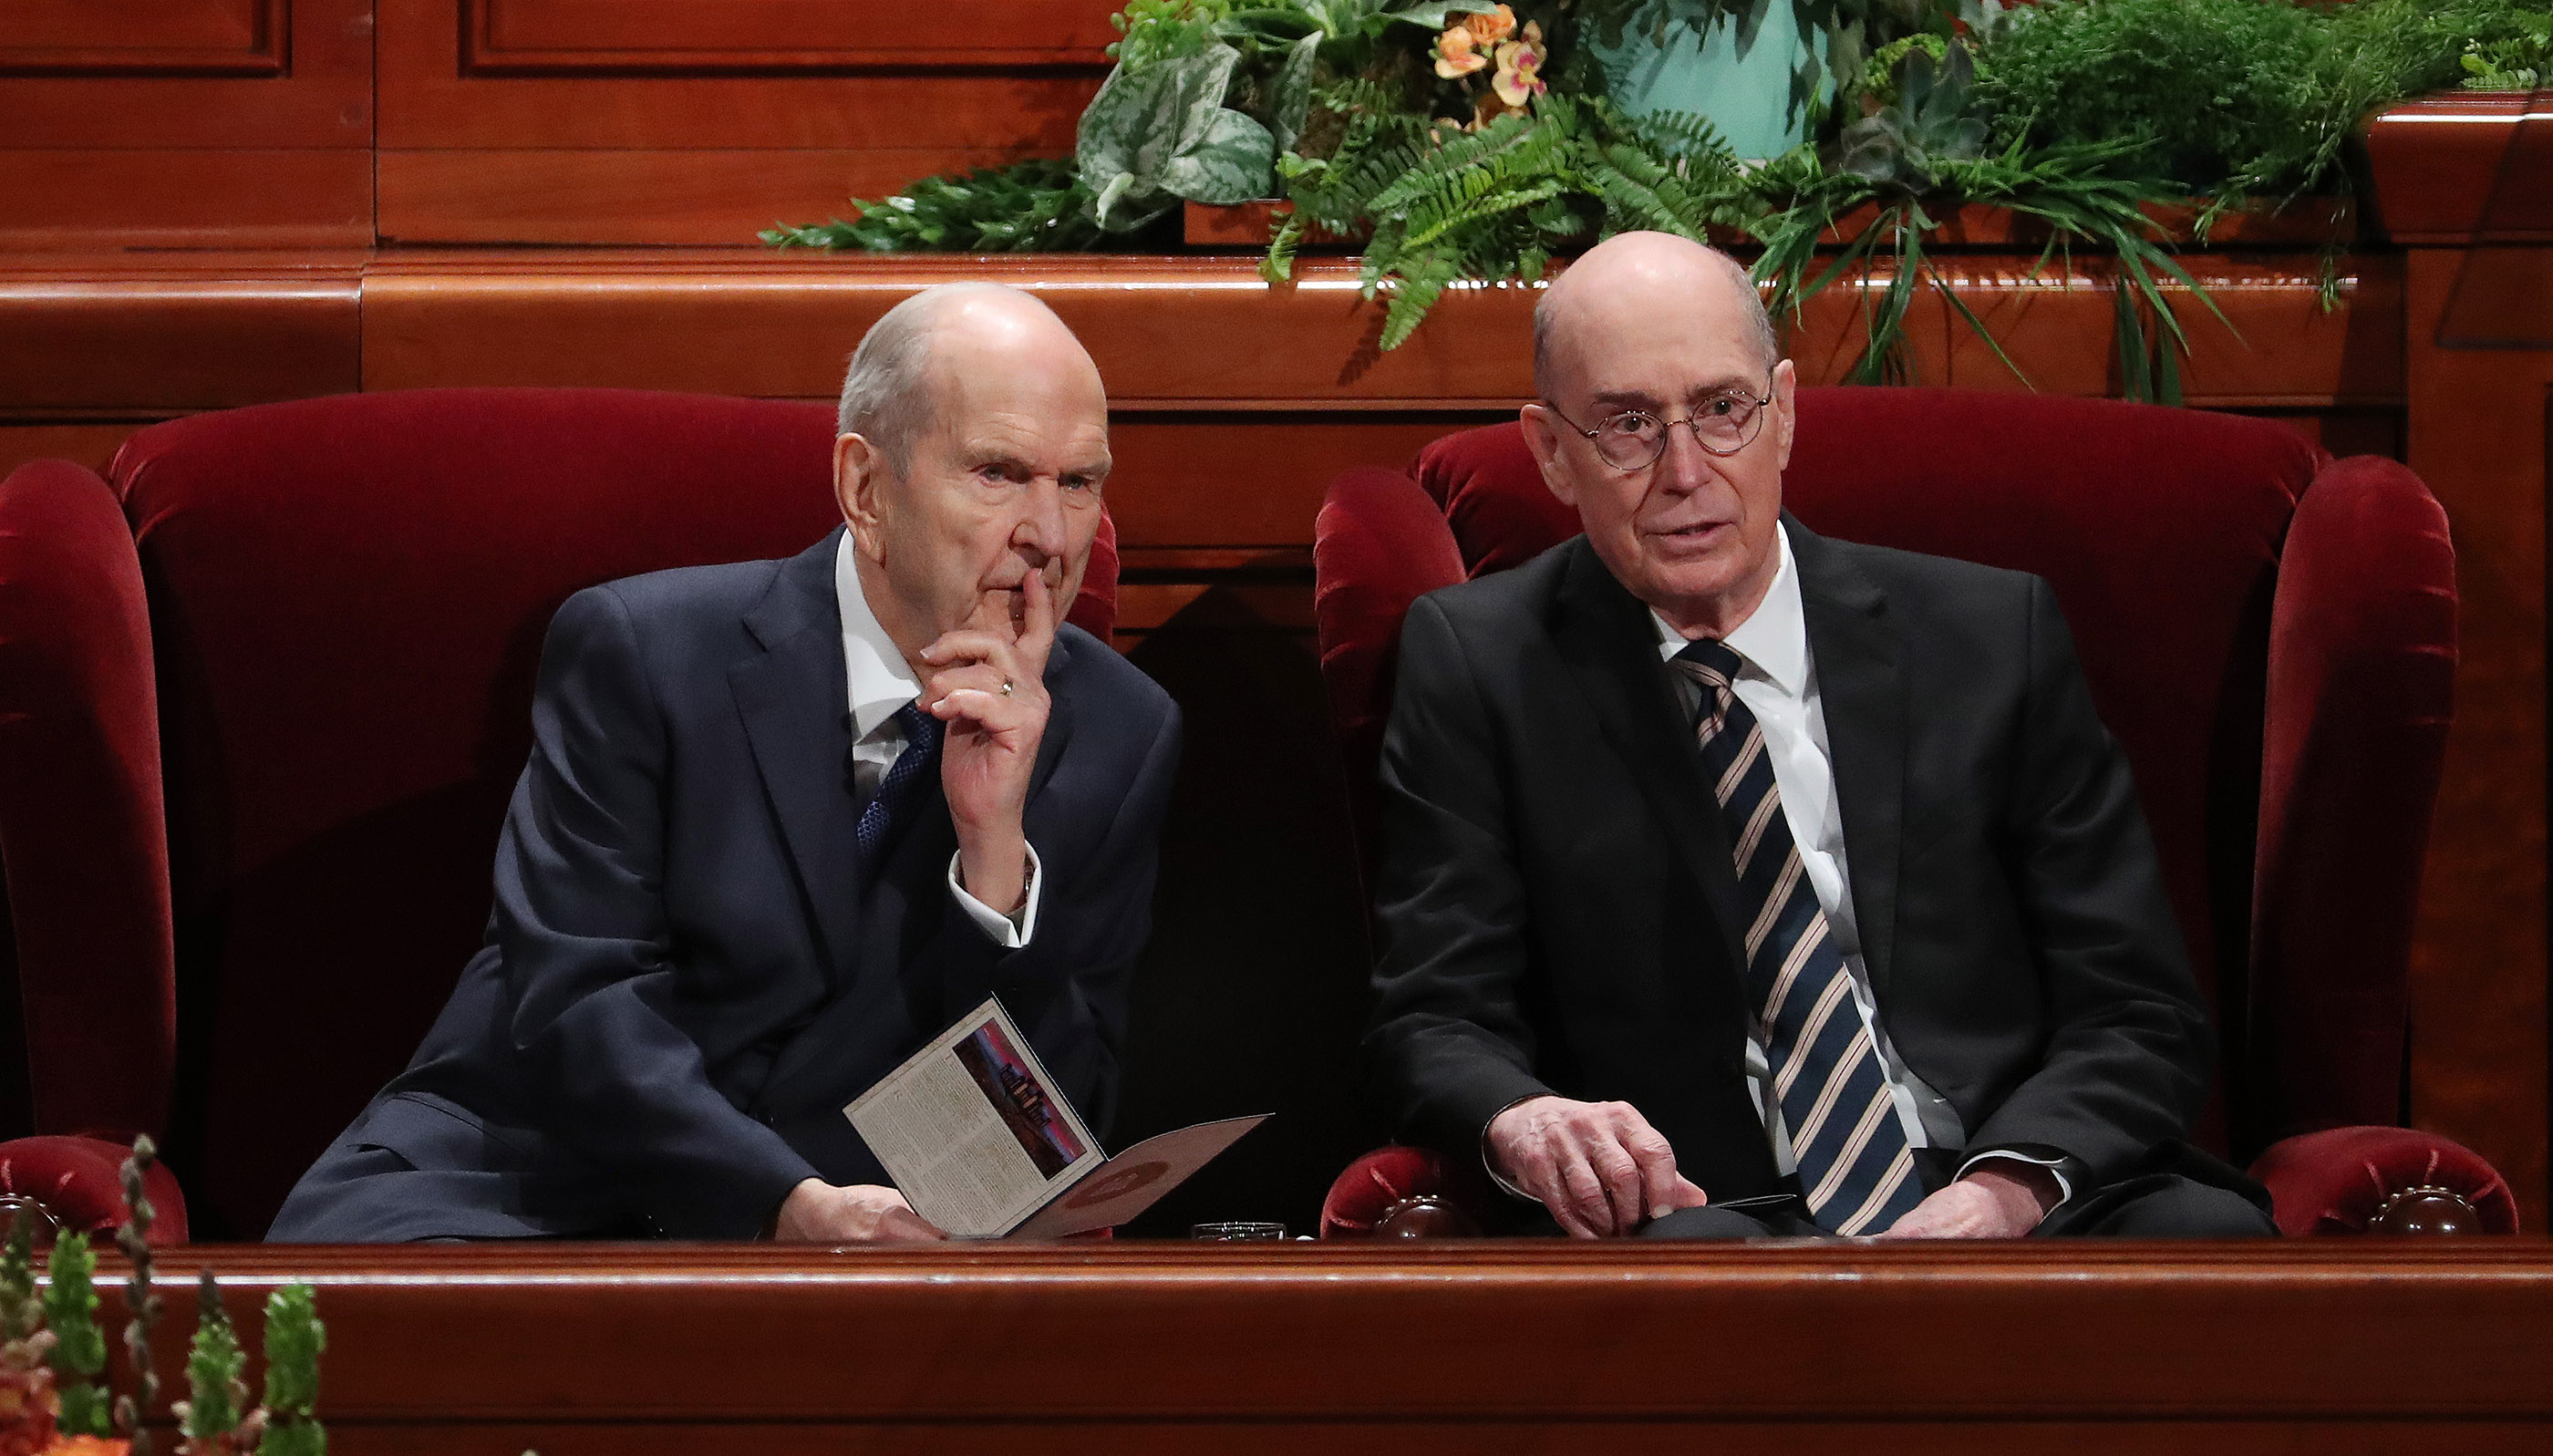 President Russell M. Nelson, left, and President Henry B. Eyring talk prior to a Sun day session of the 189th Annual General Conference of The Church of Jesus Christ of Latter-day Saints in Salt Lake City.